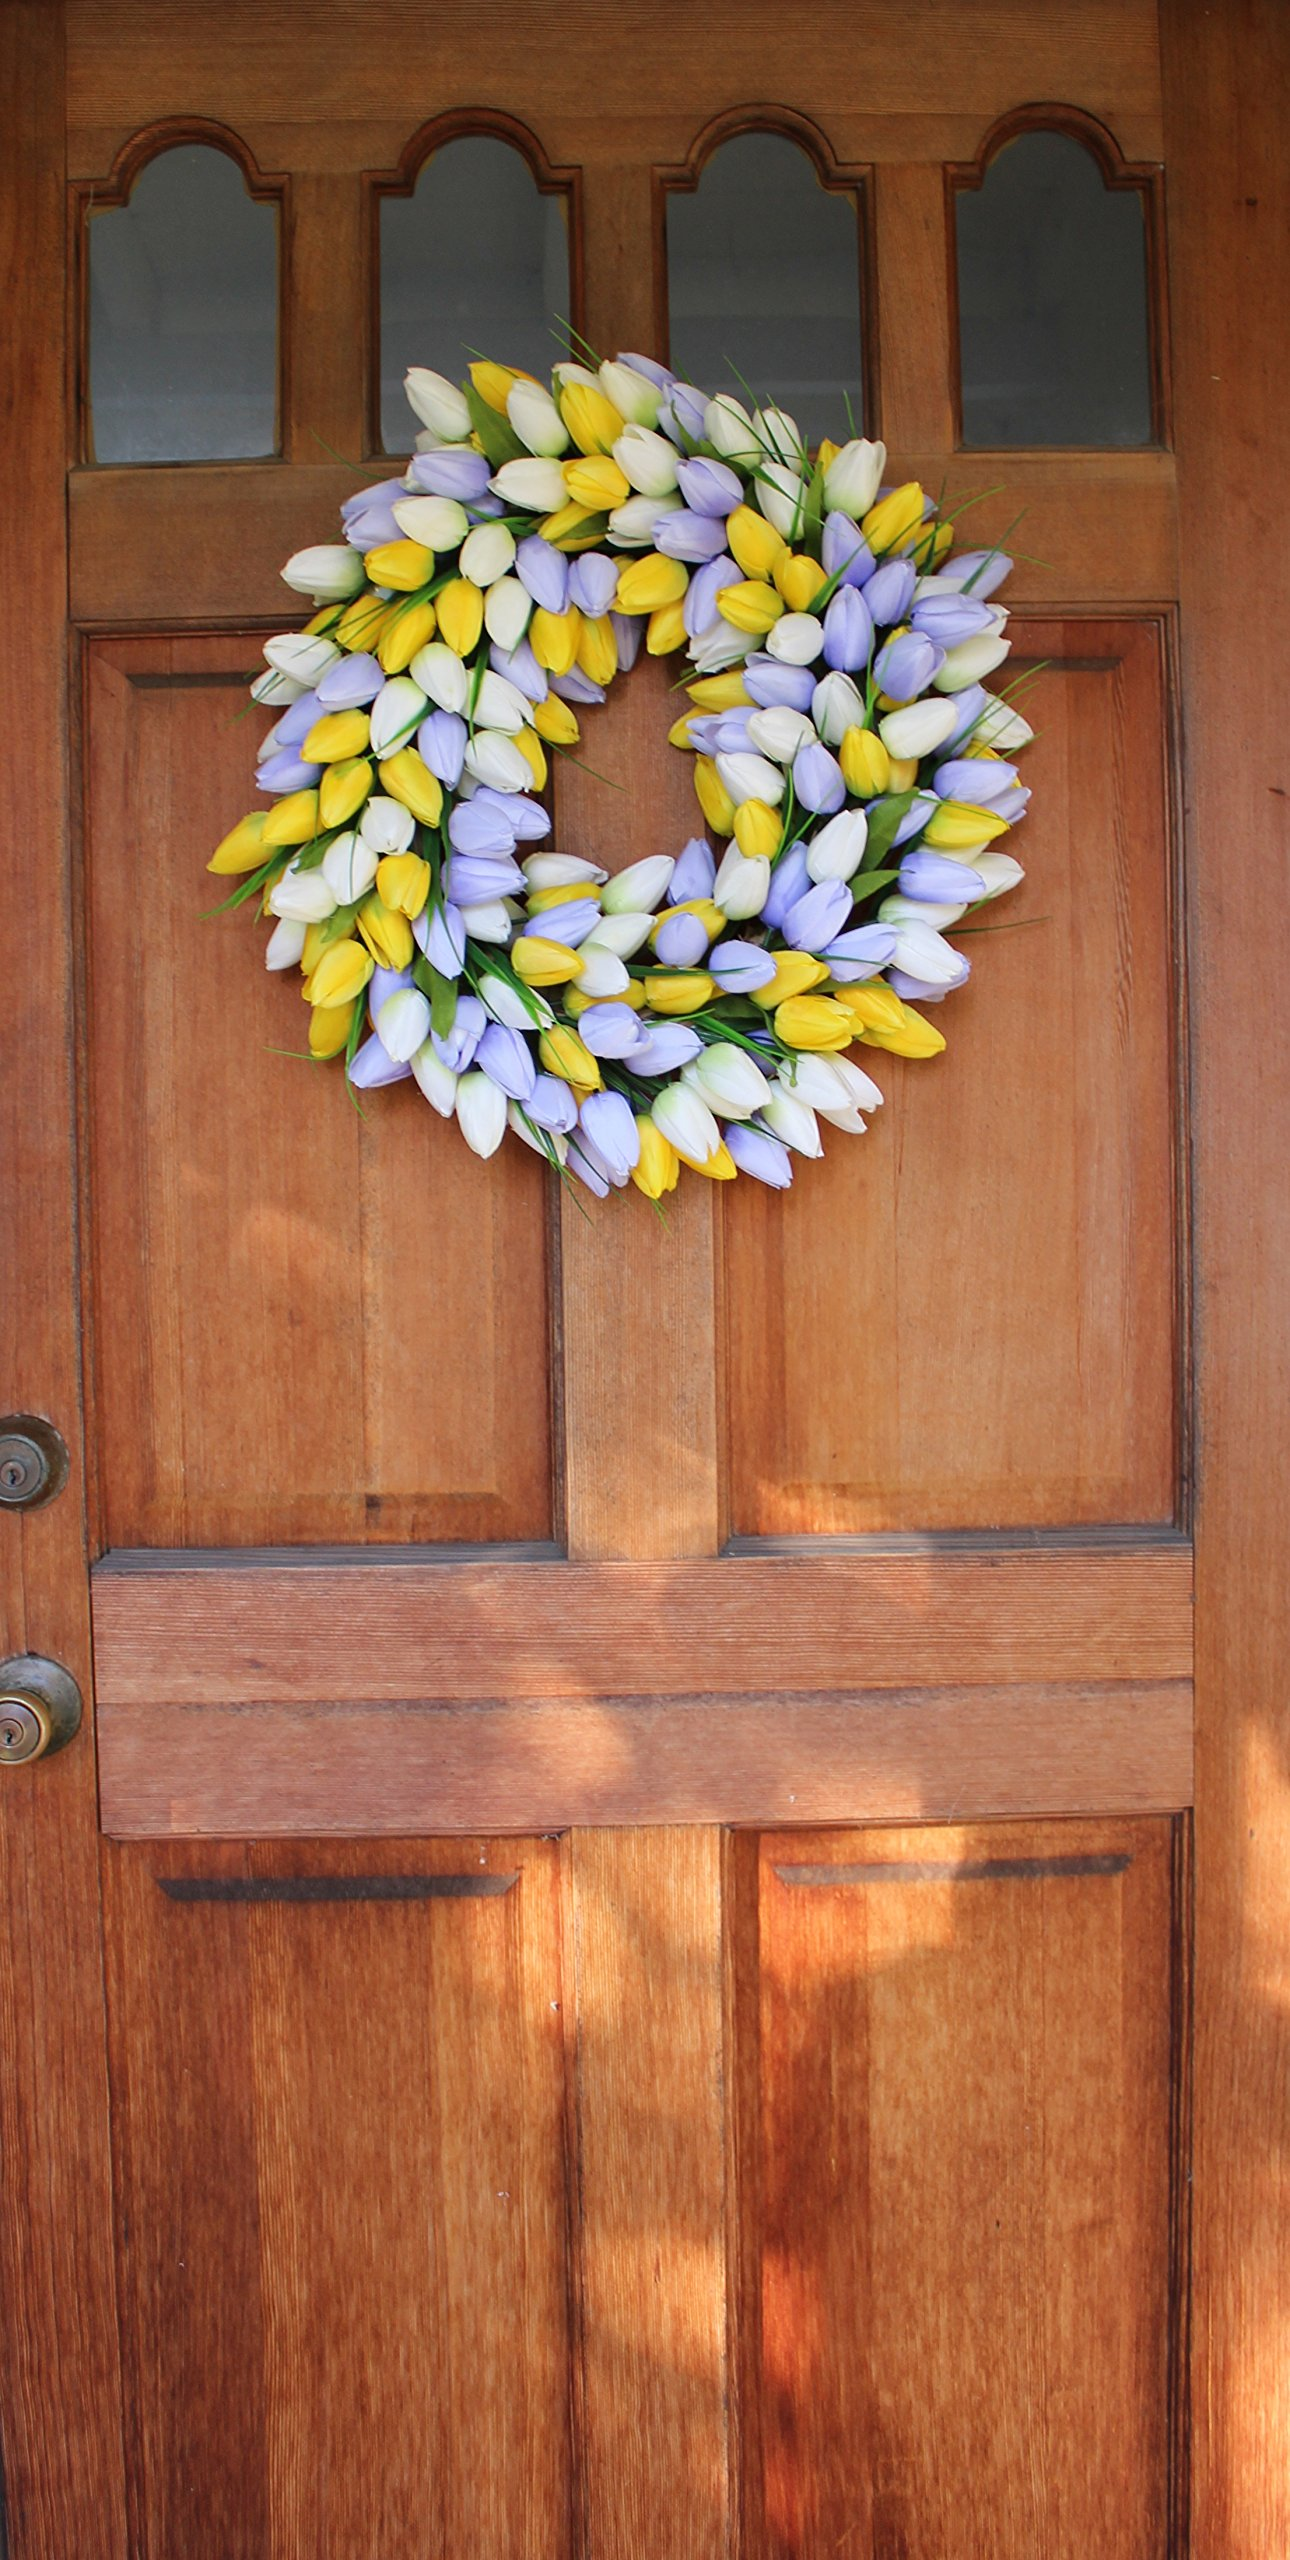 The Wreath Depot Yellow and Pale Lavender Tulip Front Door Wreath, 19 Inch